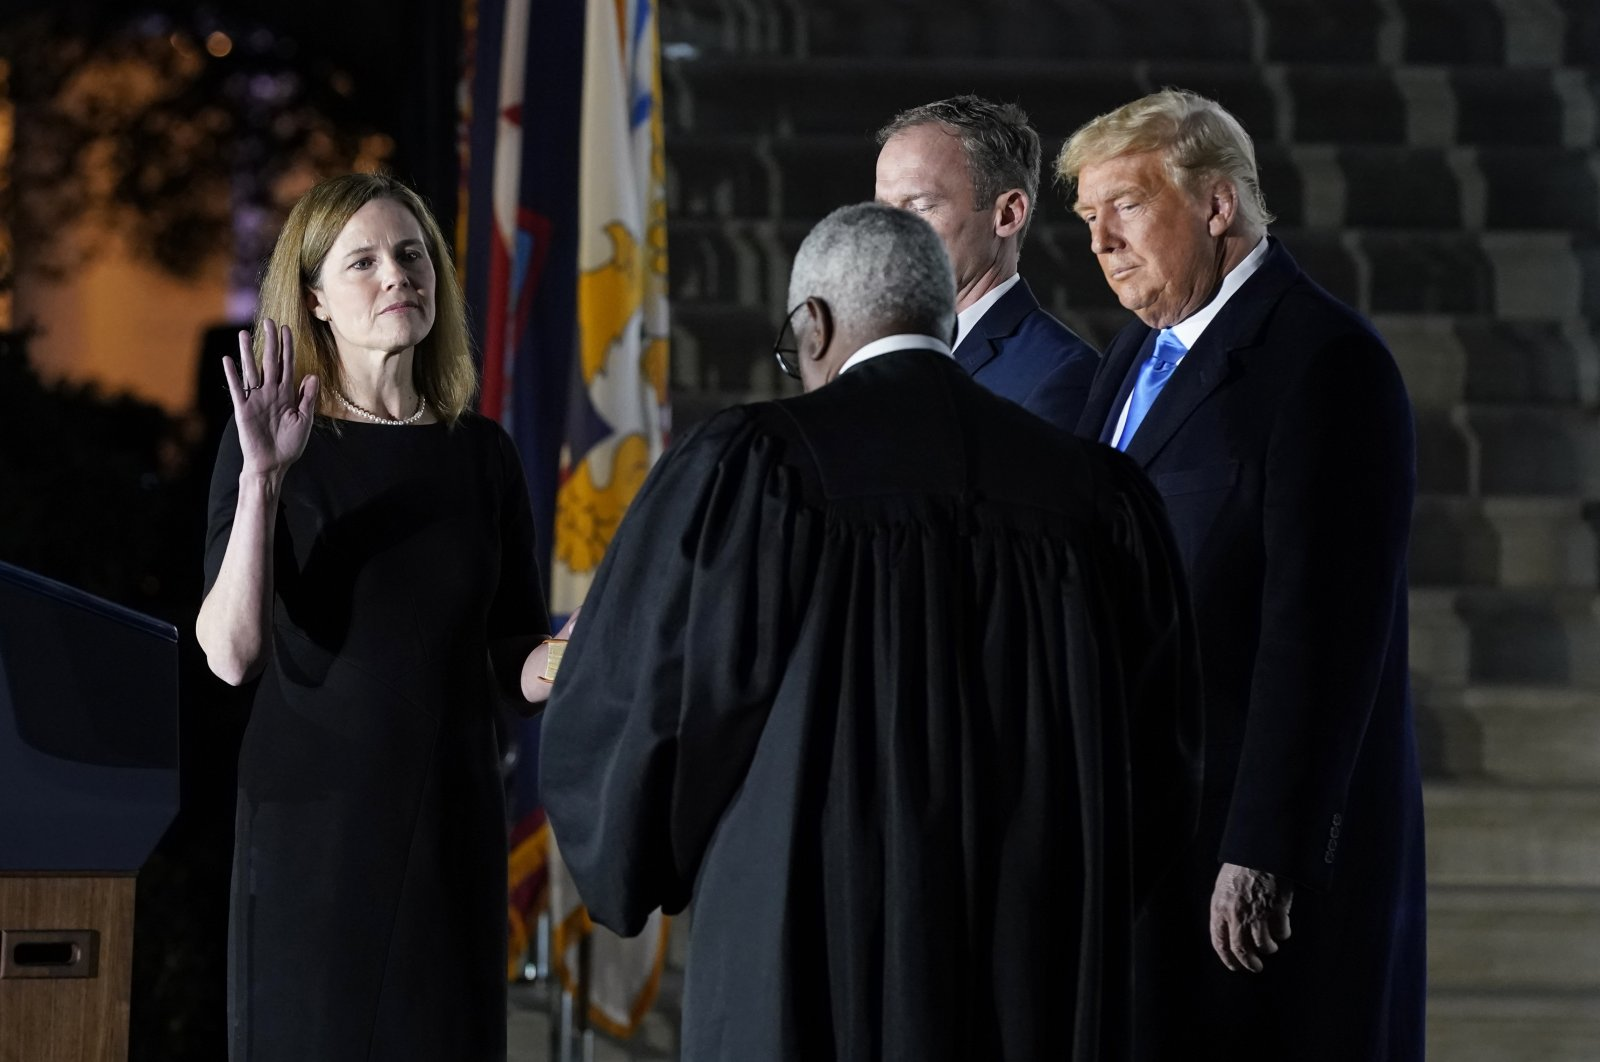 (From L to R) Amy Coney Barrett takes the Constitutional Oath administered by Supreme Court Justice Clarence Thomas. Jesse Barrett holds the Bible while President Donald Trump watches, on the South Lawn of the White House in Washington D.C., Oct. 26, 2020. (AP Photo)